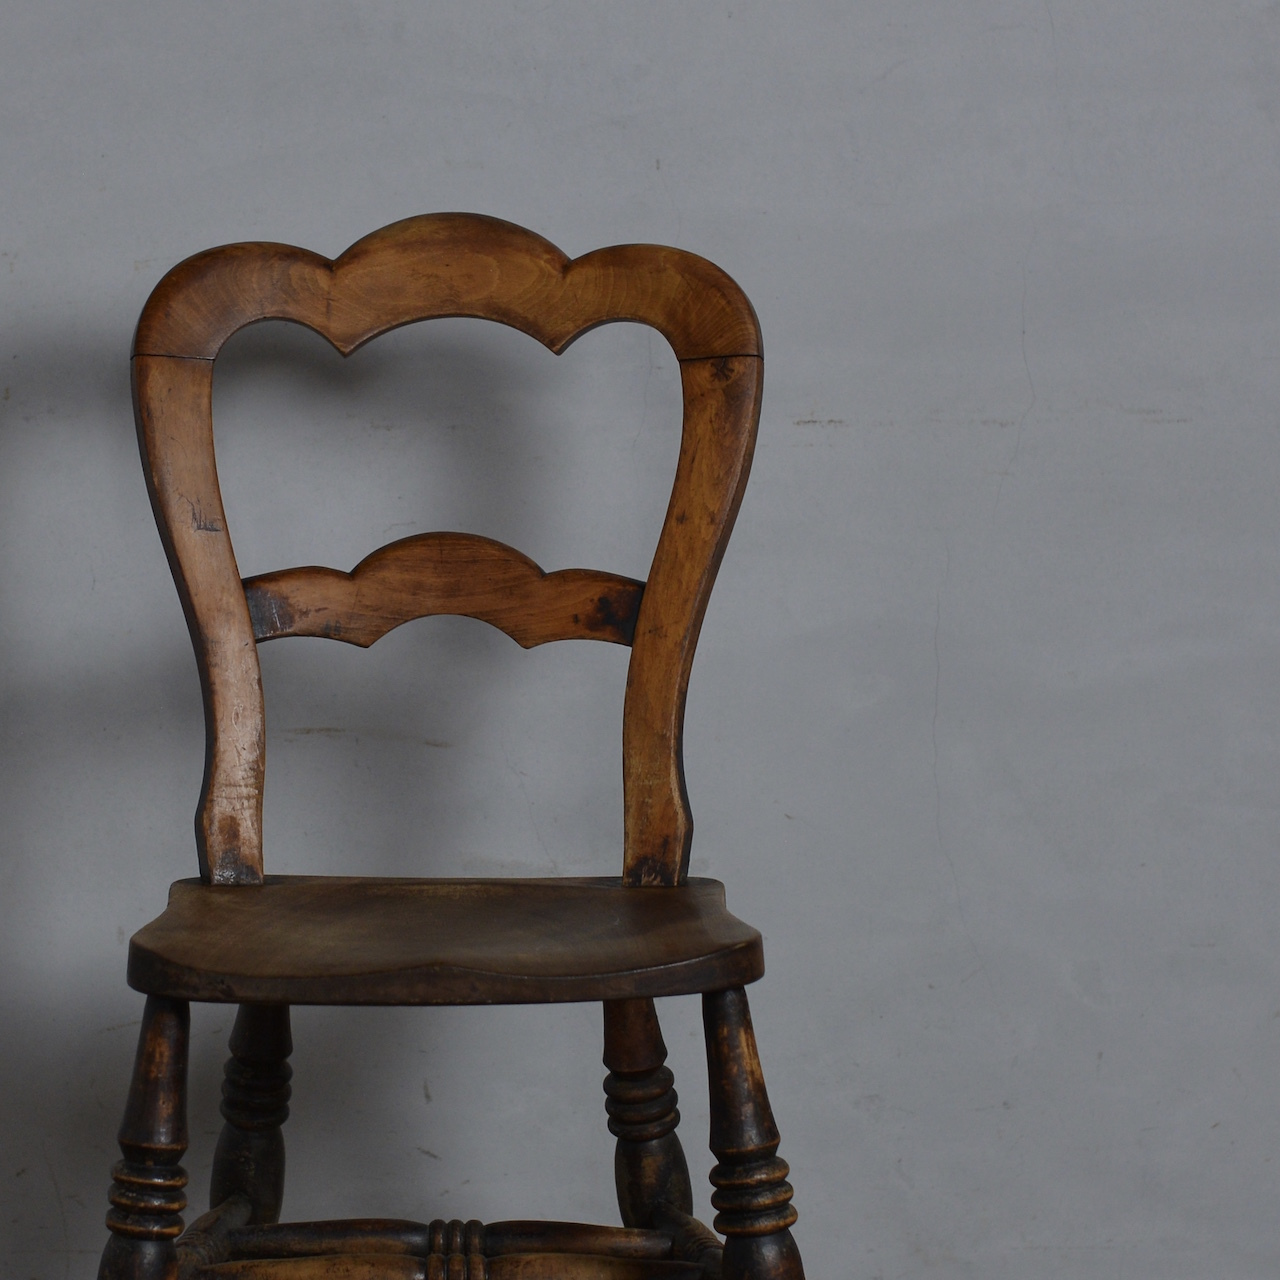 Balloon Back Kitchen Chair / バルーン バック キッチン チェア 【A】〈ダイニング チェア・椅子・カントリー〉